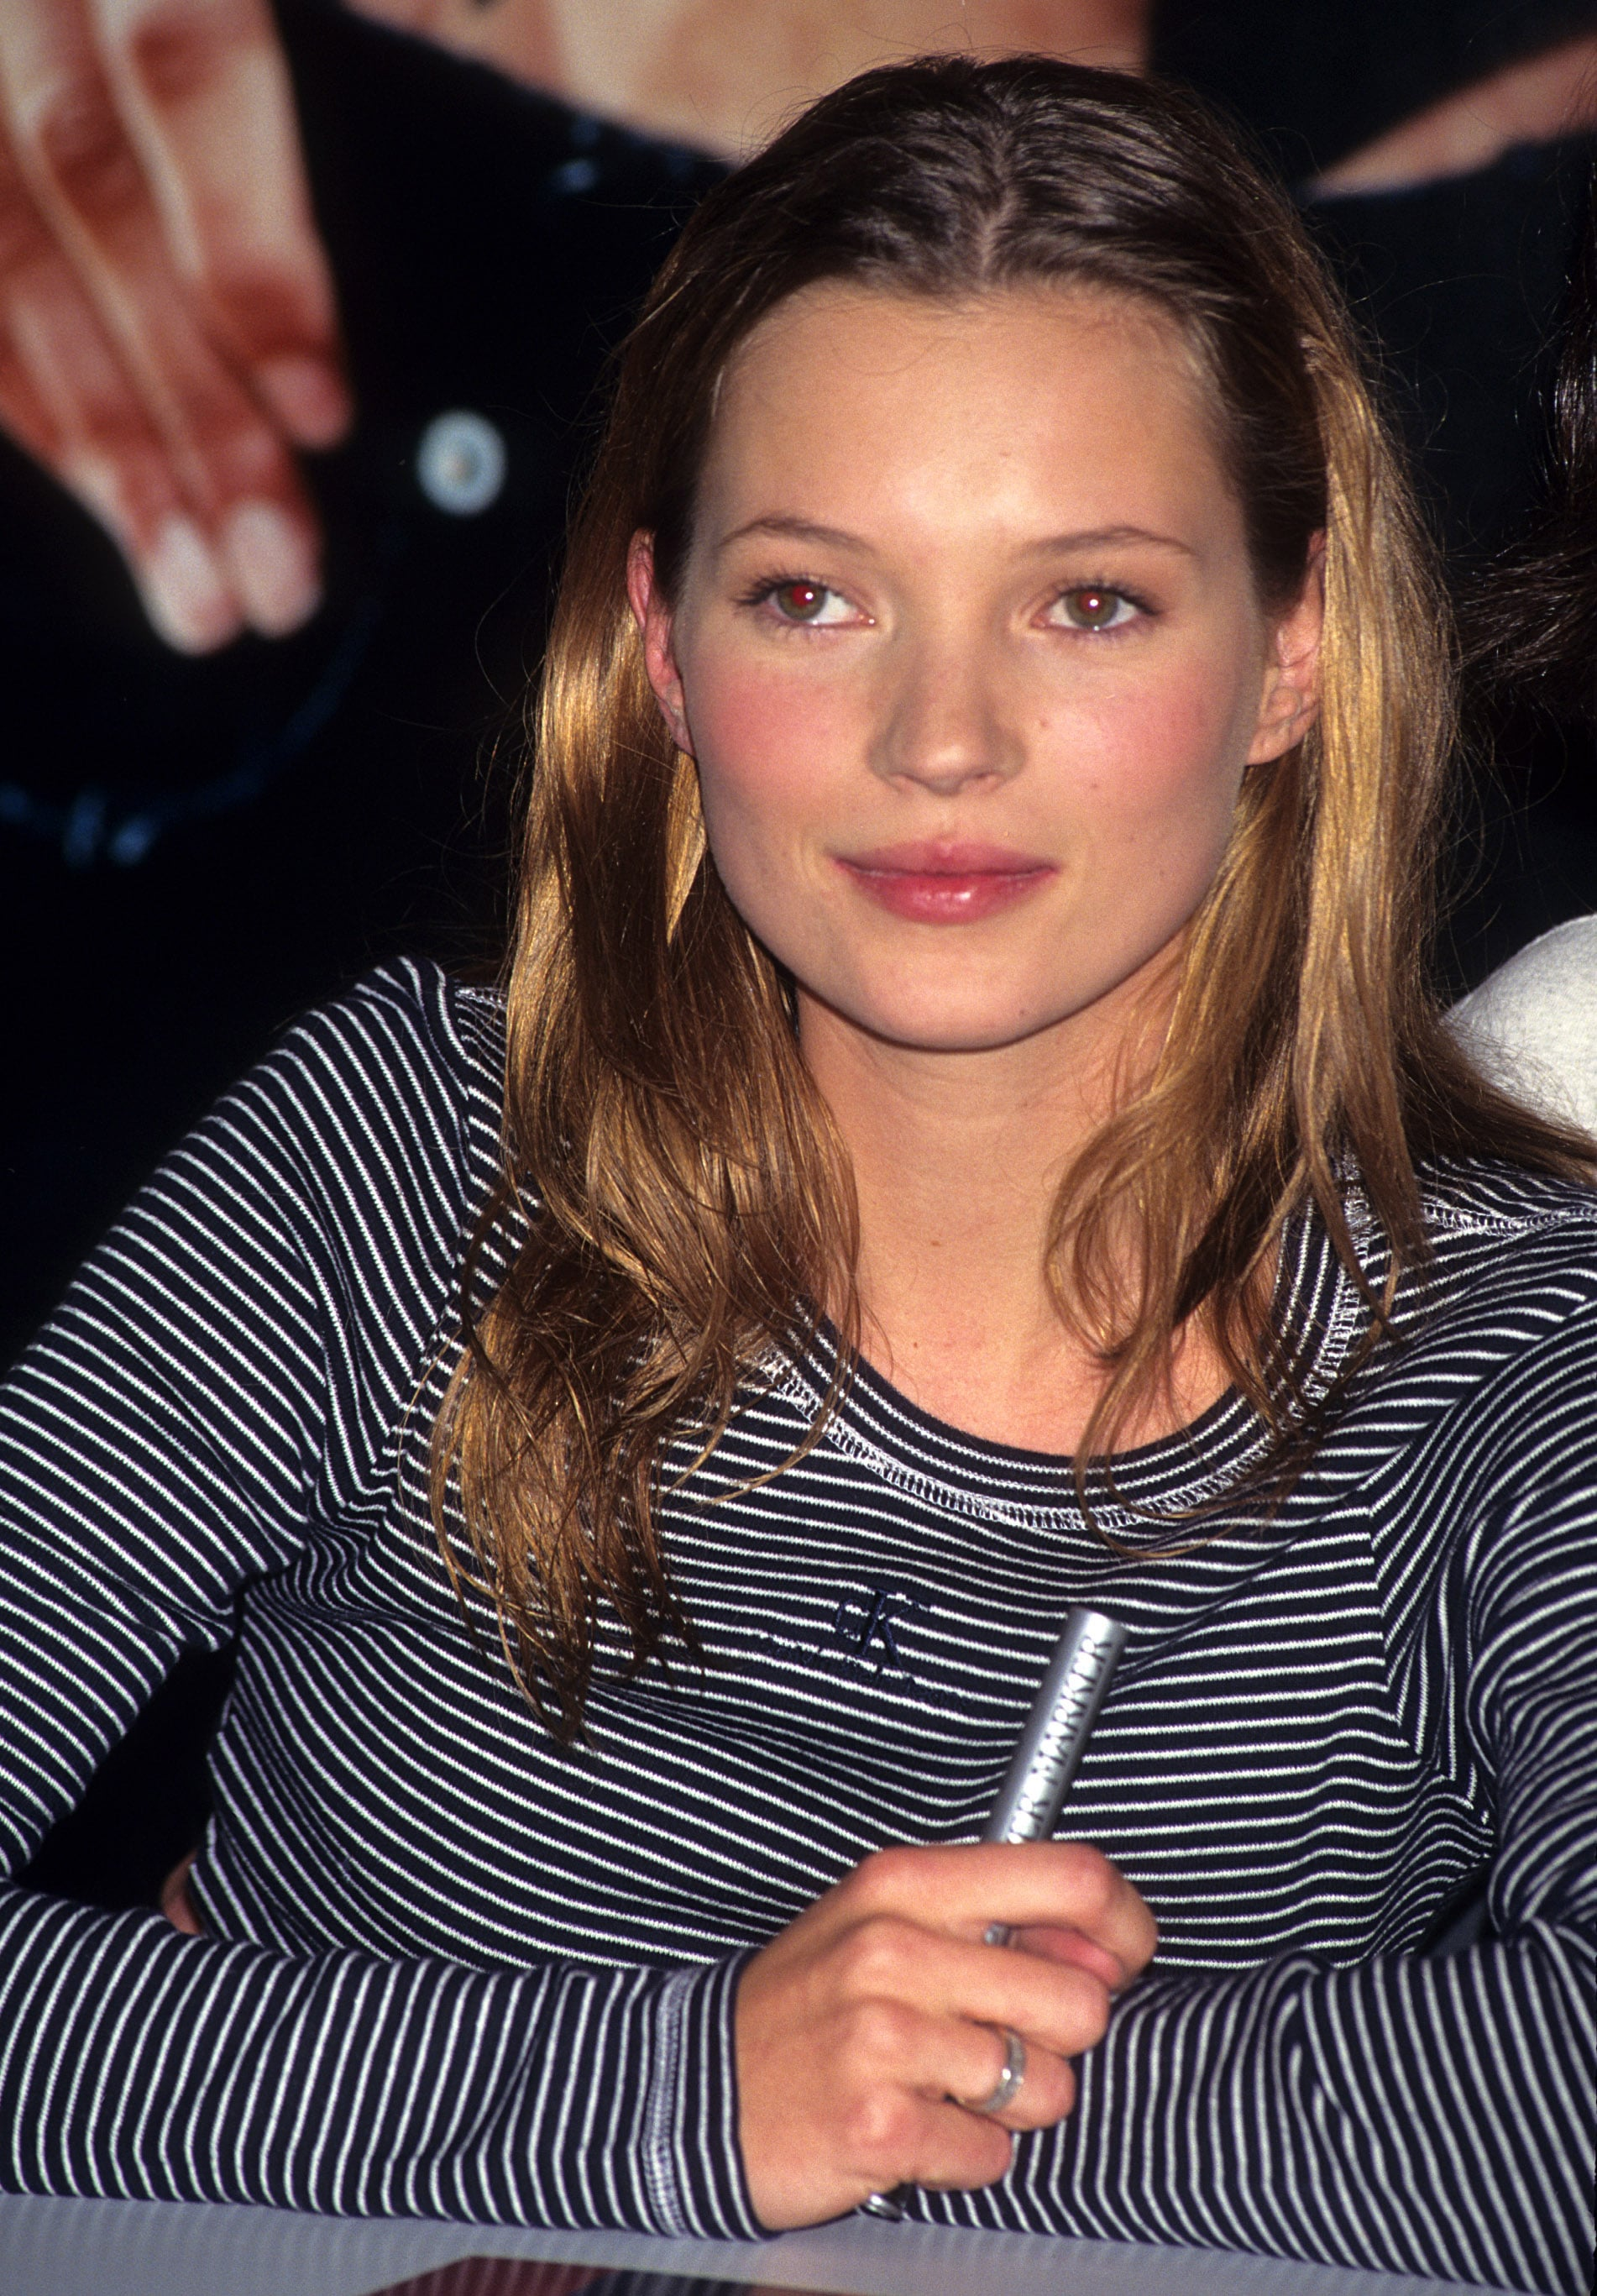 Kate Moss Celebrities Of The 39 90s And The Beauty Looks They Loved Popsugar Beauty